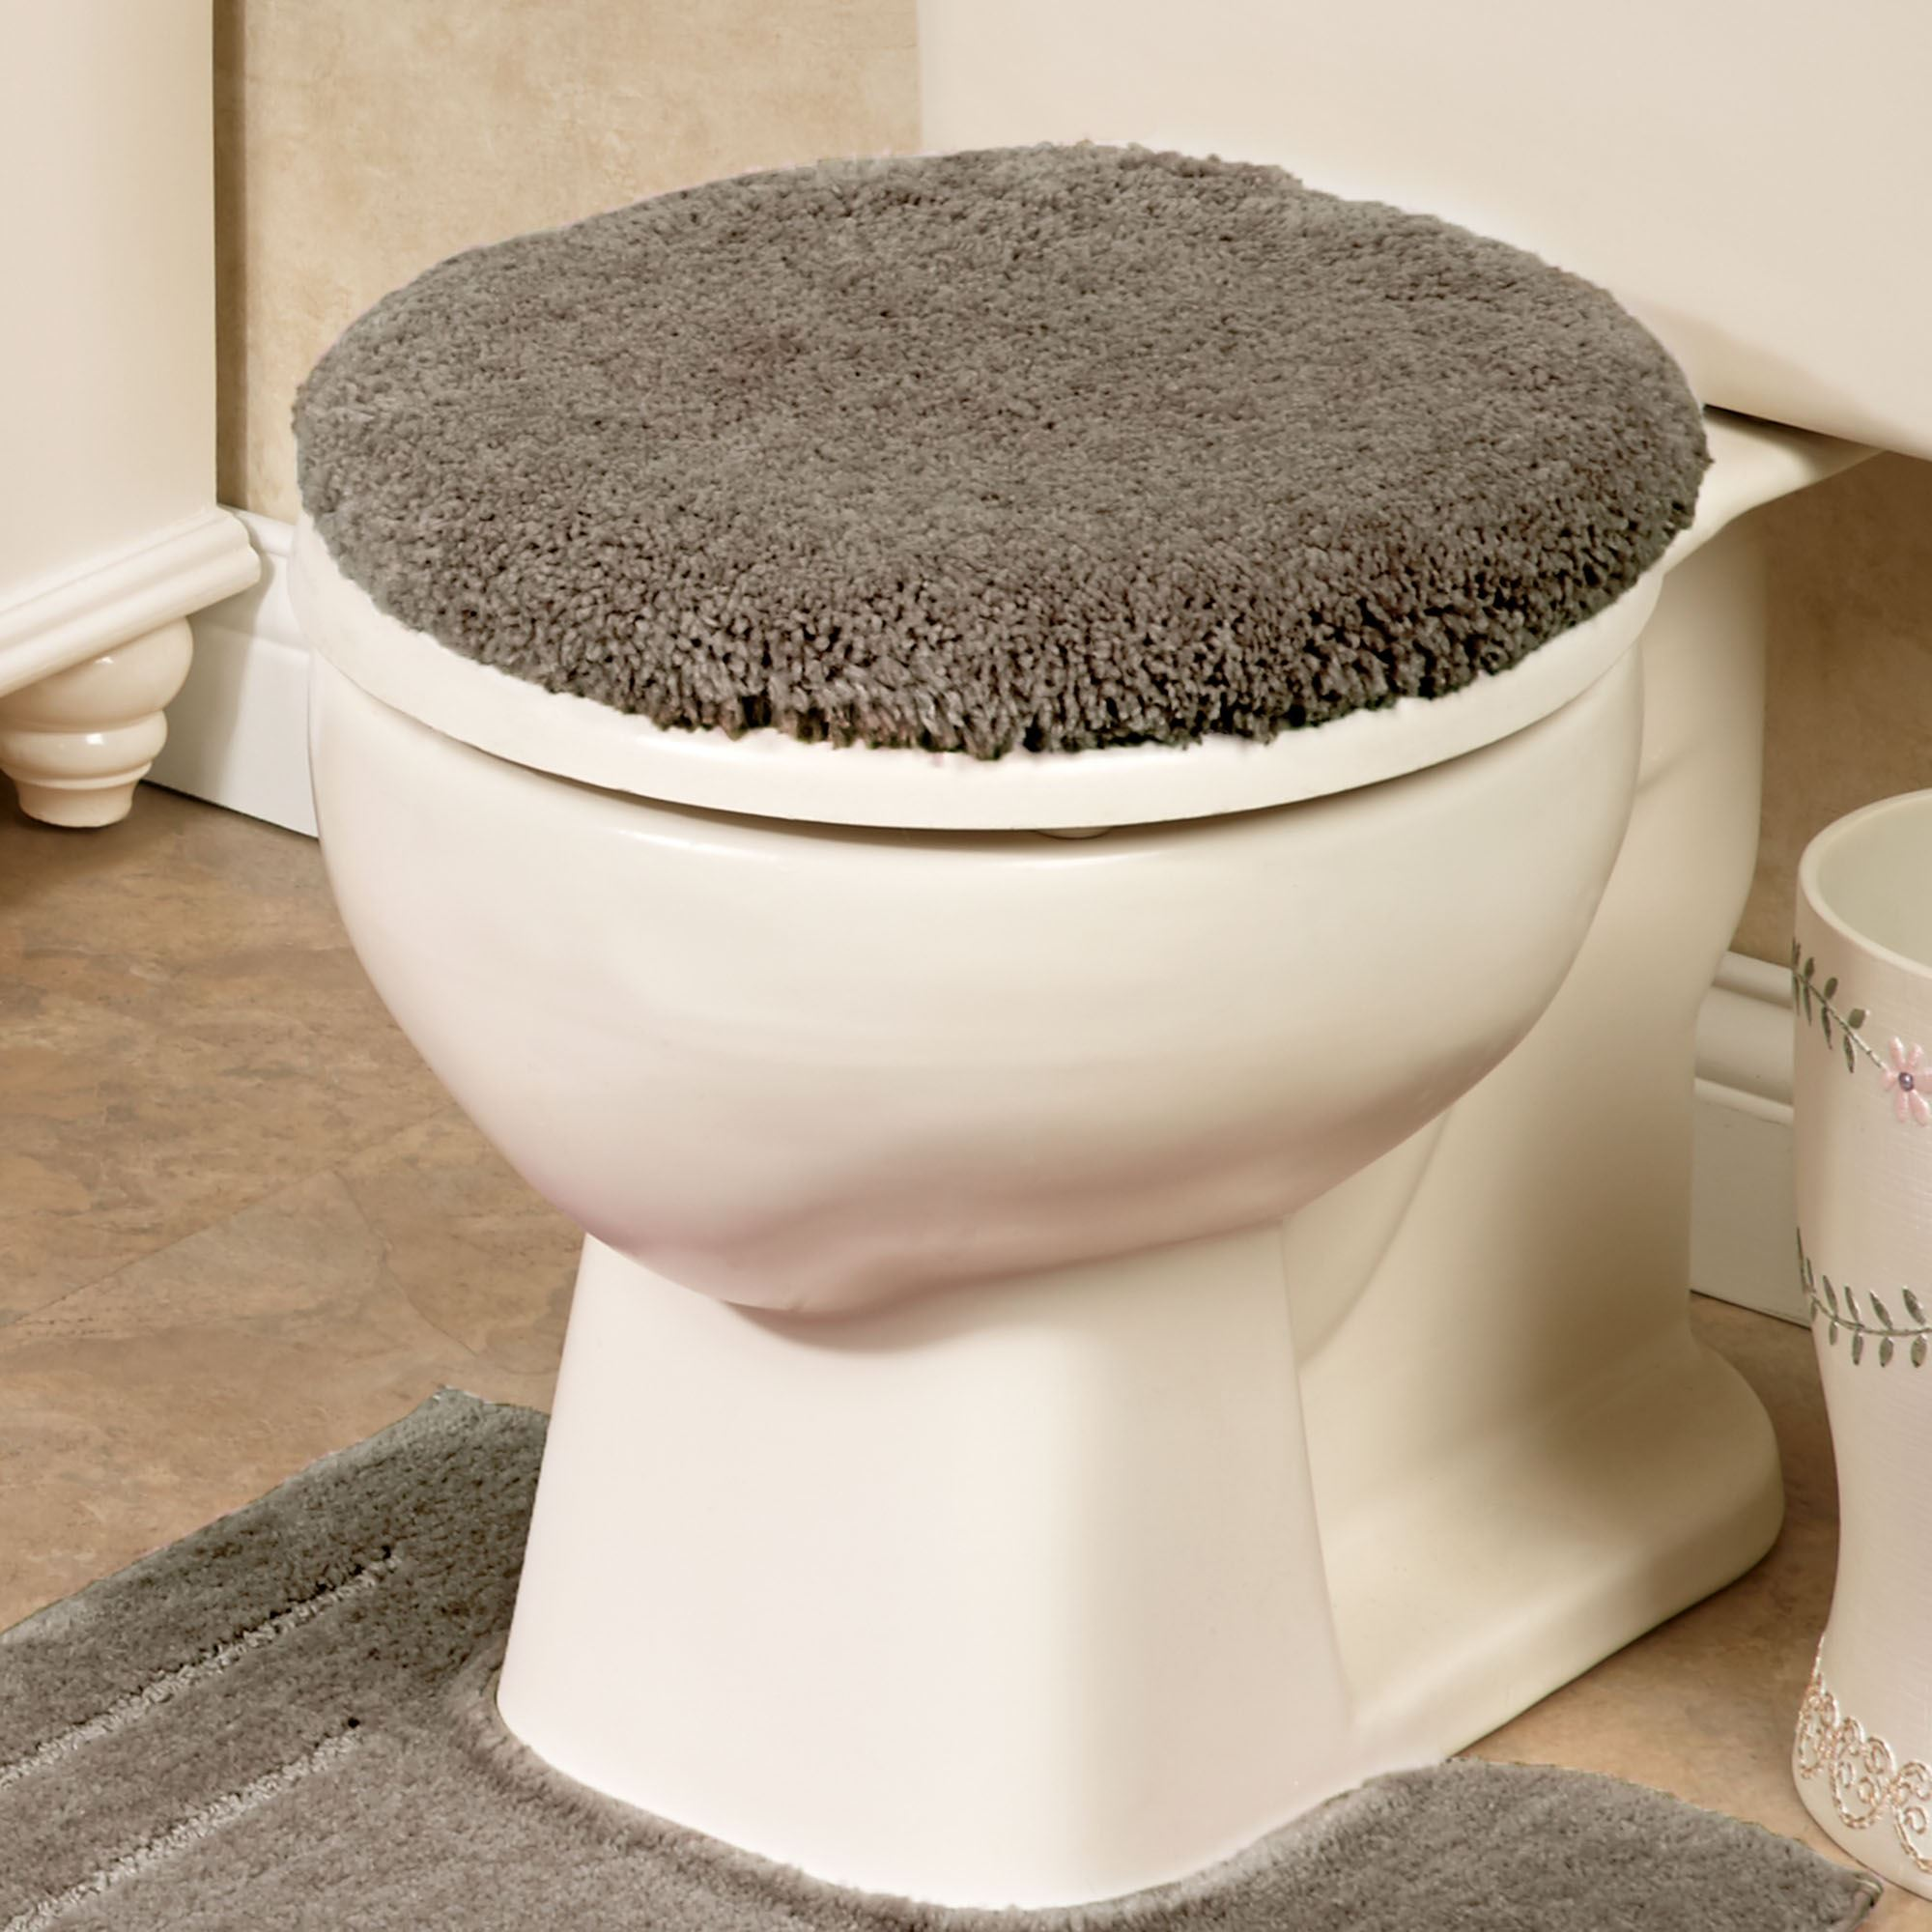 Peachy Soho Solid Color Toilet Lid Cover Lamtechconsult Wood Chair Design Ideas Lamtechconsultcom